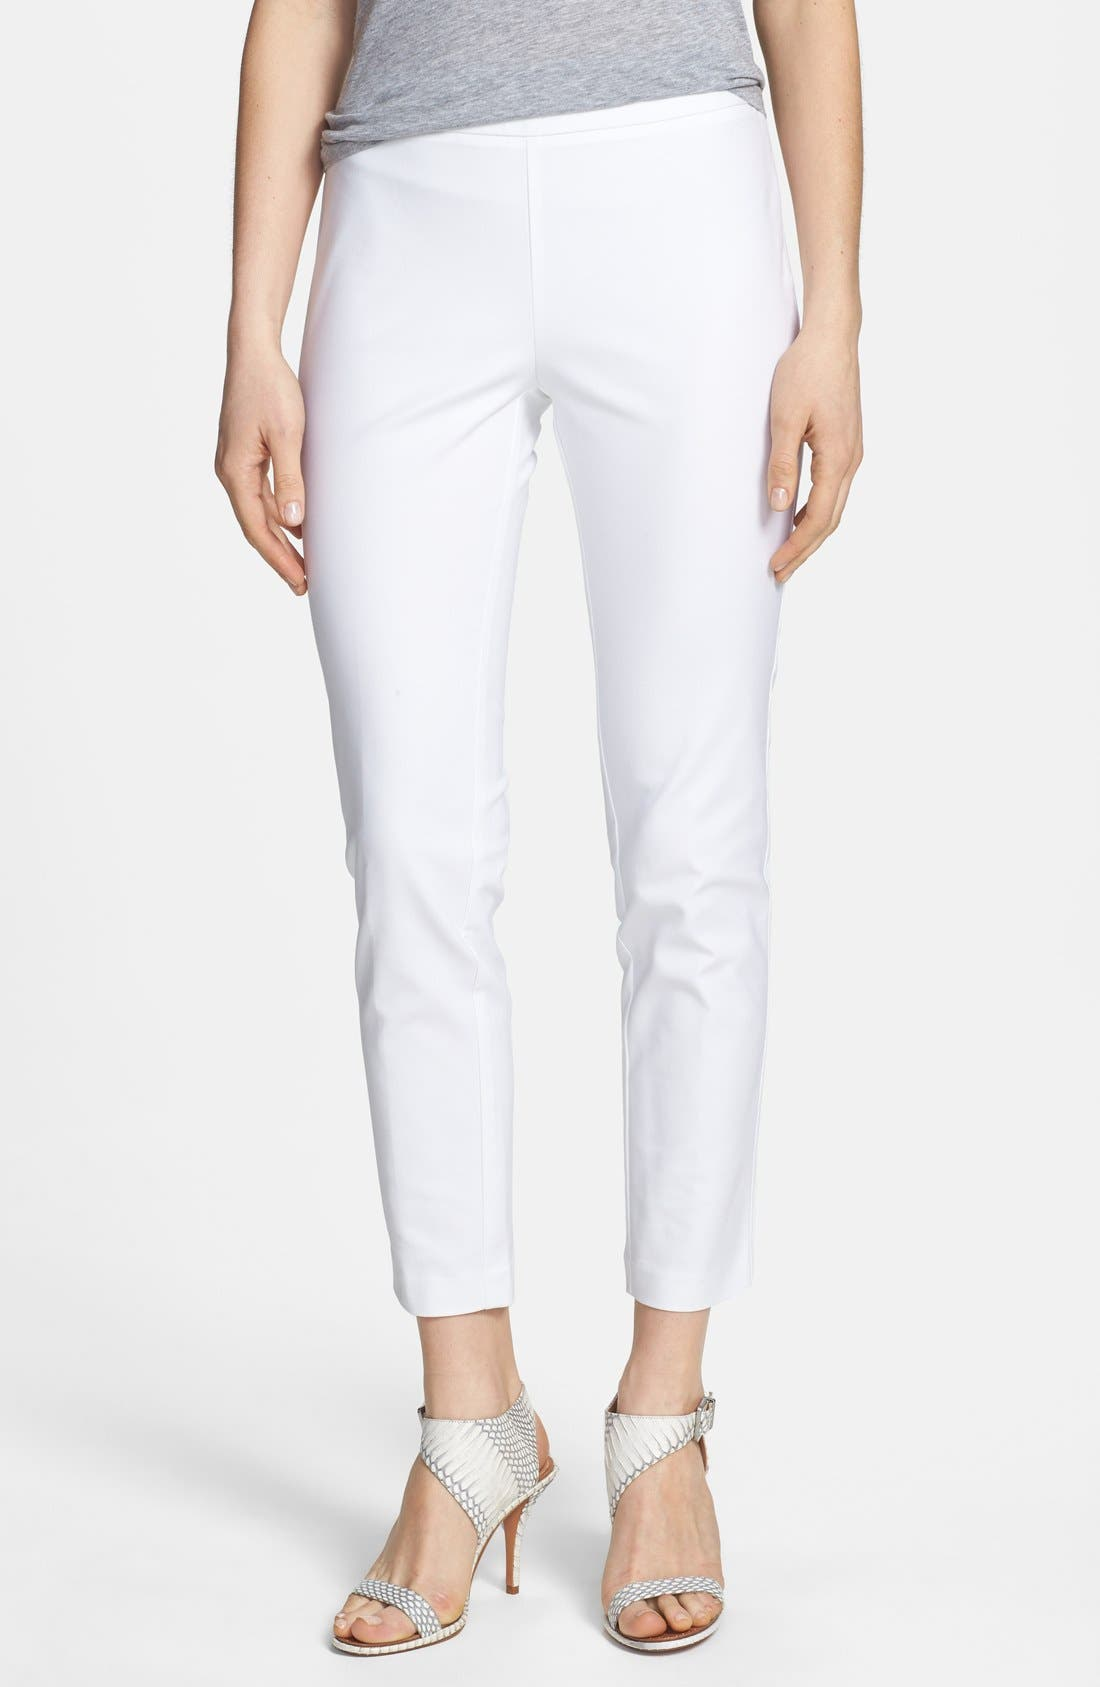 Alternate Image 1 Selected - Kenneth Cole New York 'Khloee' Crop Stretch Cotton Pants (Petite)